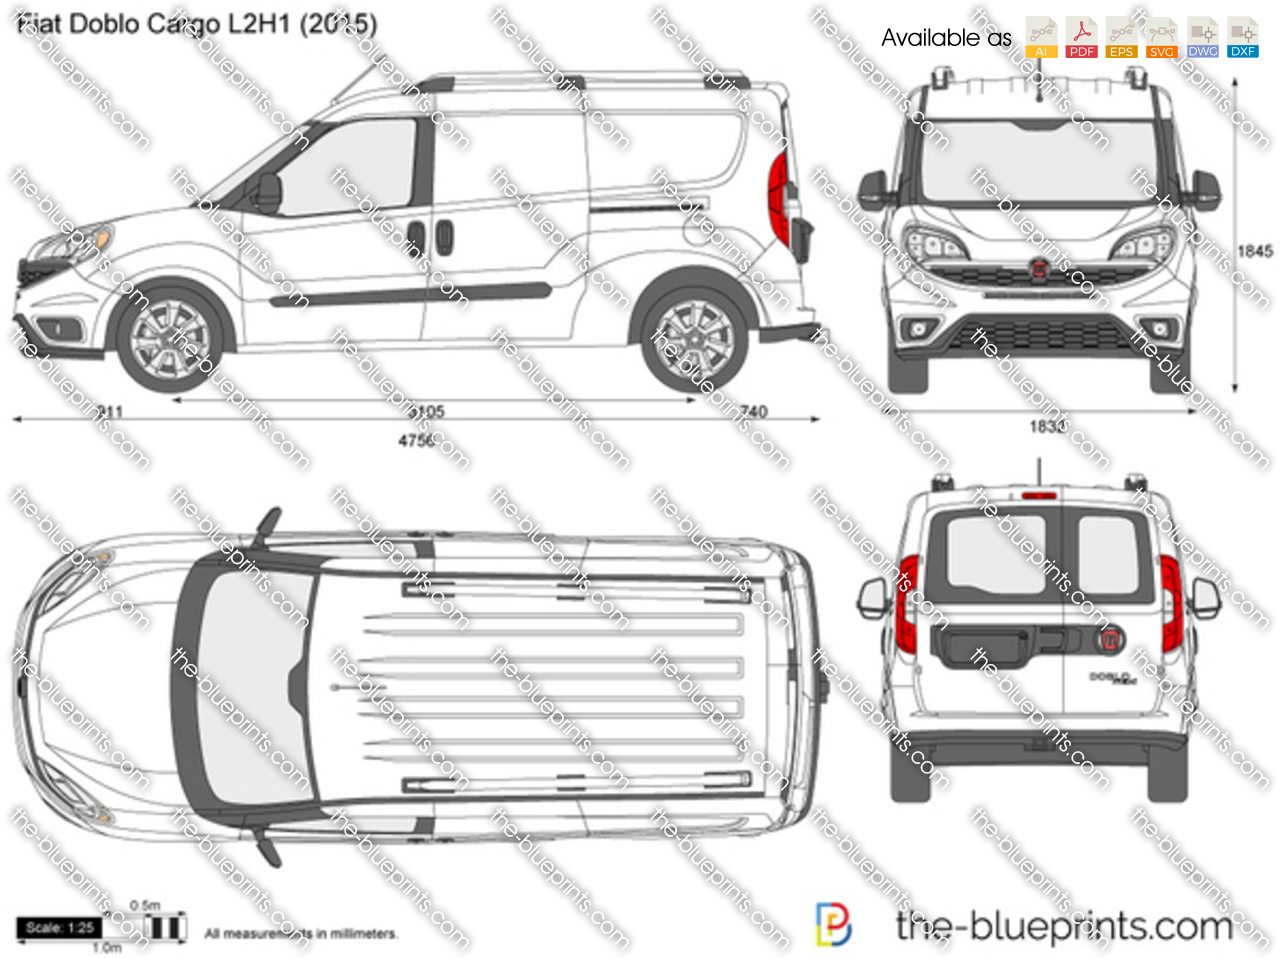 fiat doblo cargo l2h1 vector drawing. Black Bedroom Furniture Sets. Home Design Ideas